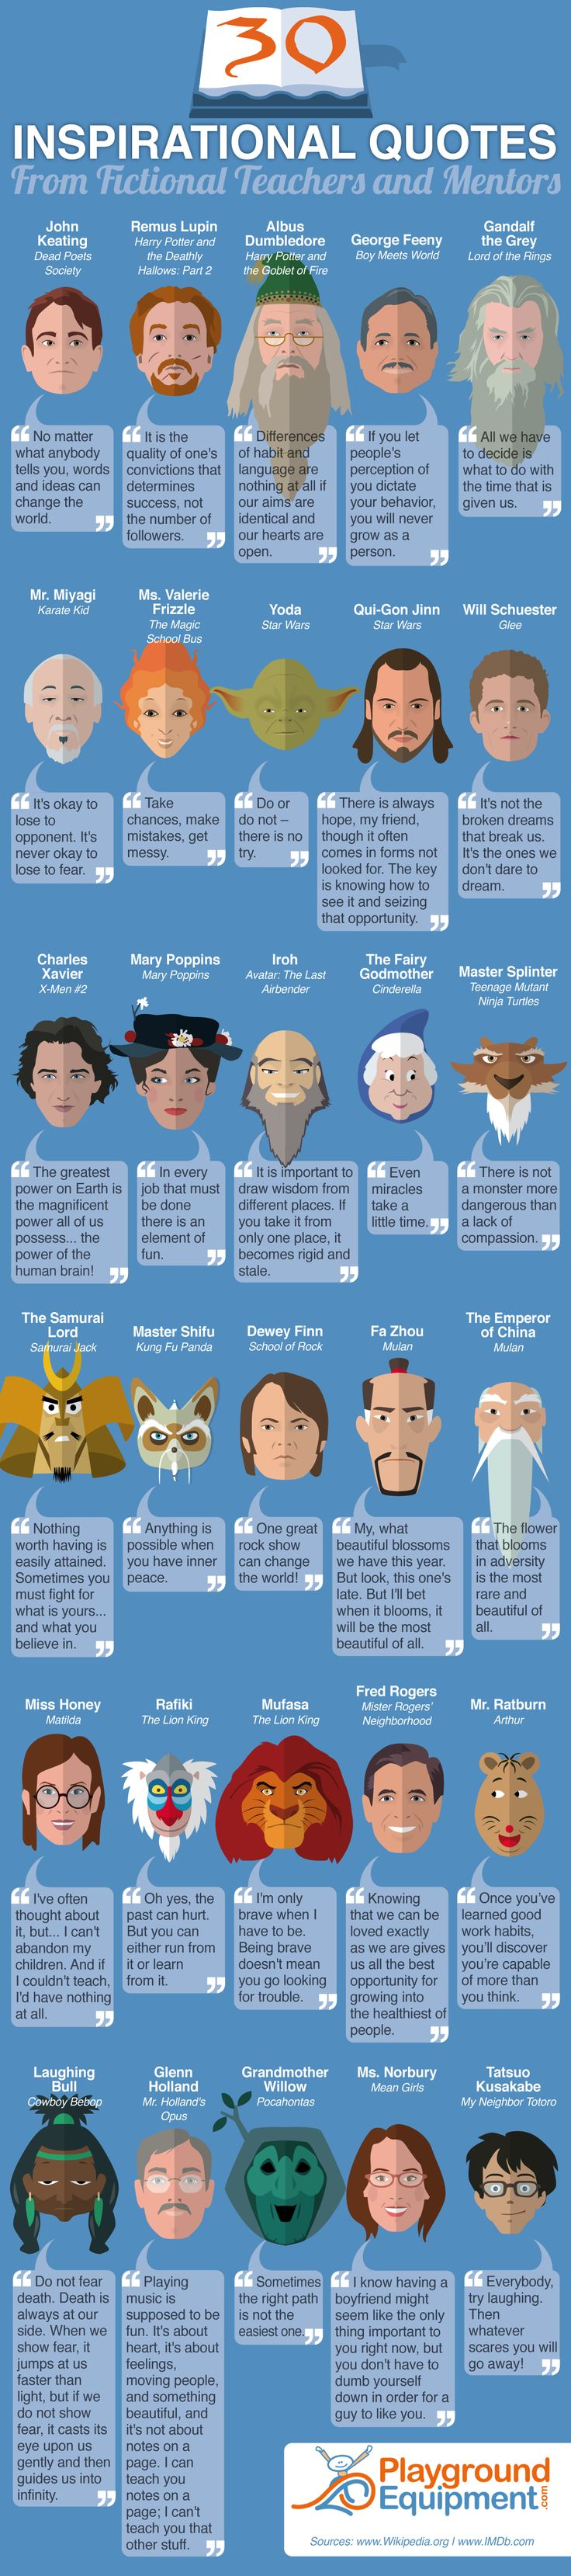 Looking for a little inspiration? These quotes from 30 fictional characters are sure to make you smile!